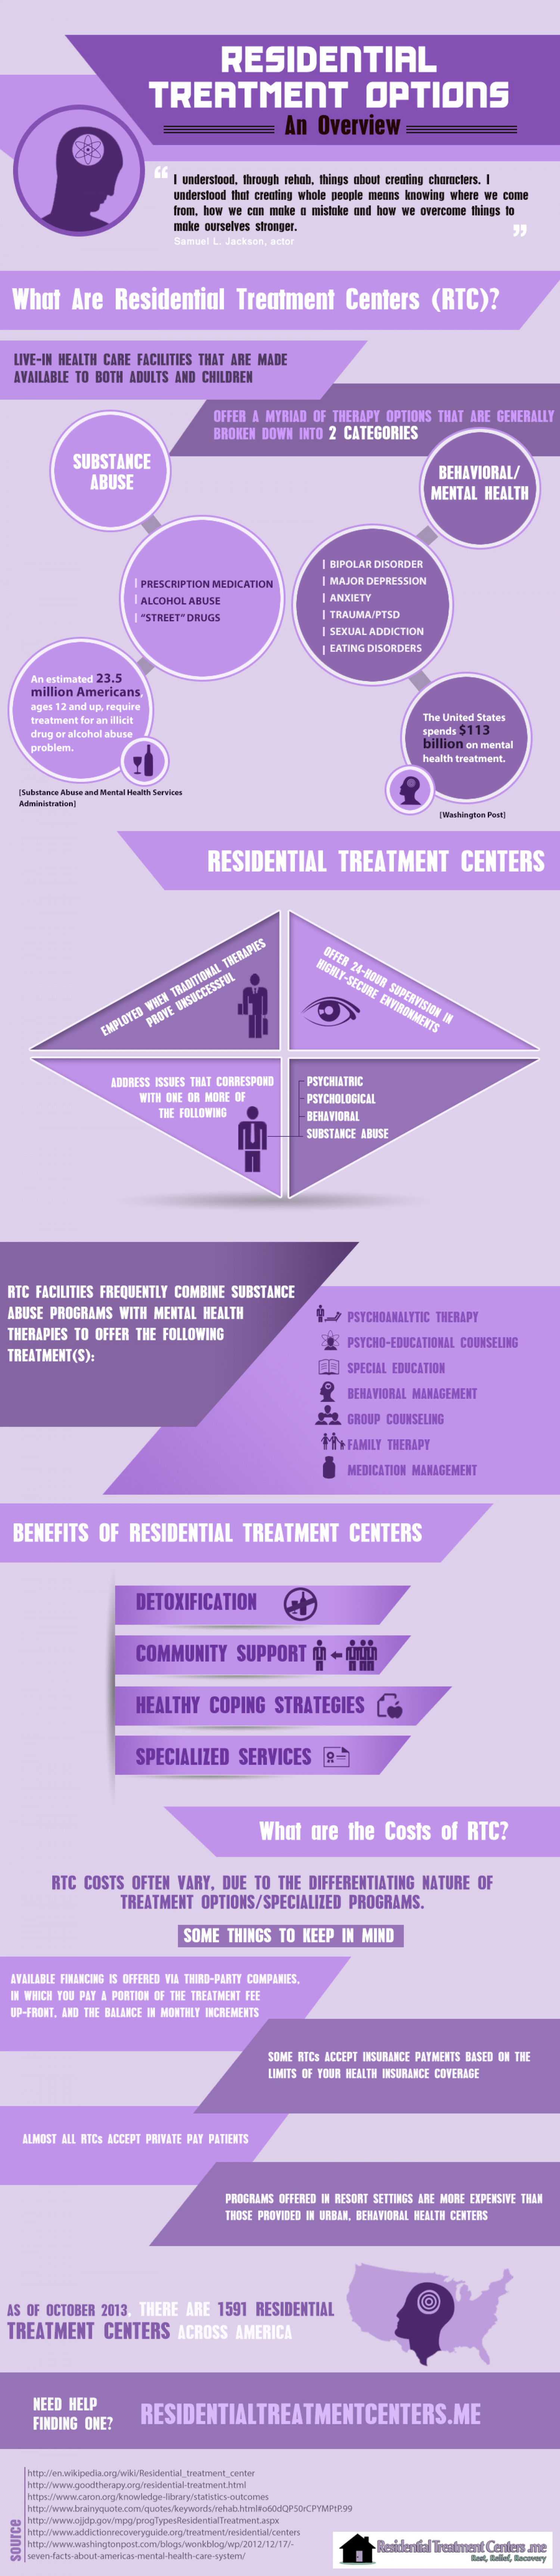 Residential Treatment Options: An Overview Infographic